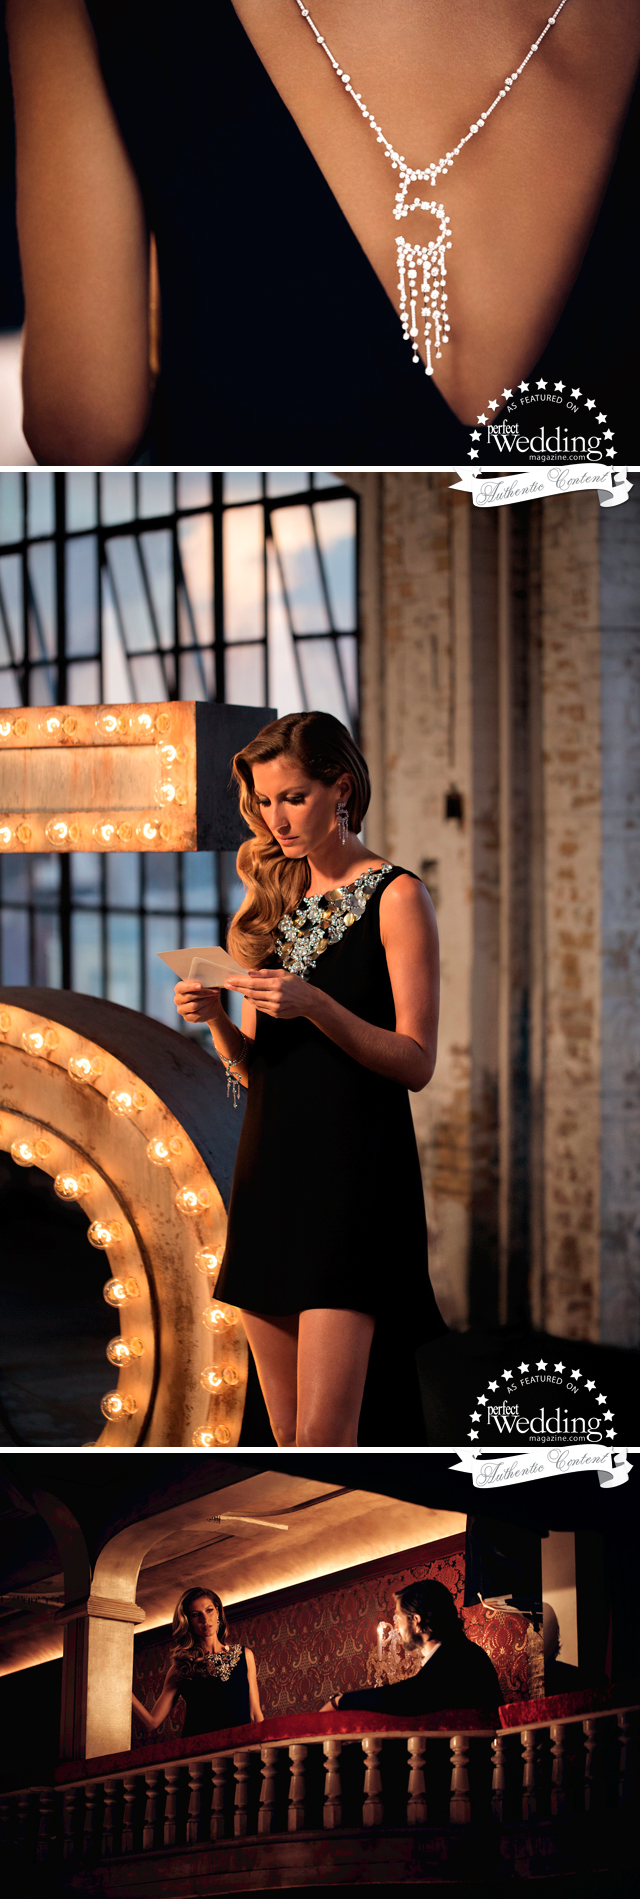 Chanel, Chanel No. 5, The One That I Want, Perfect Wedding Magazine, Gisele Bündchen